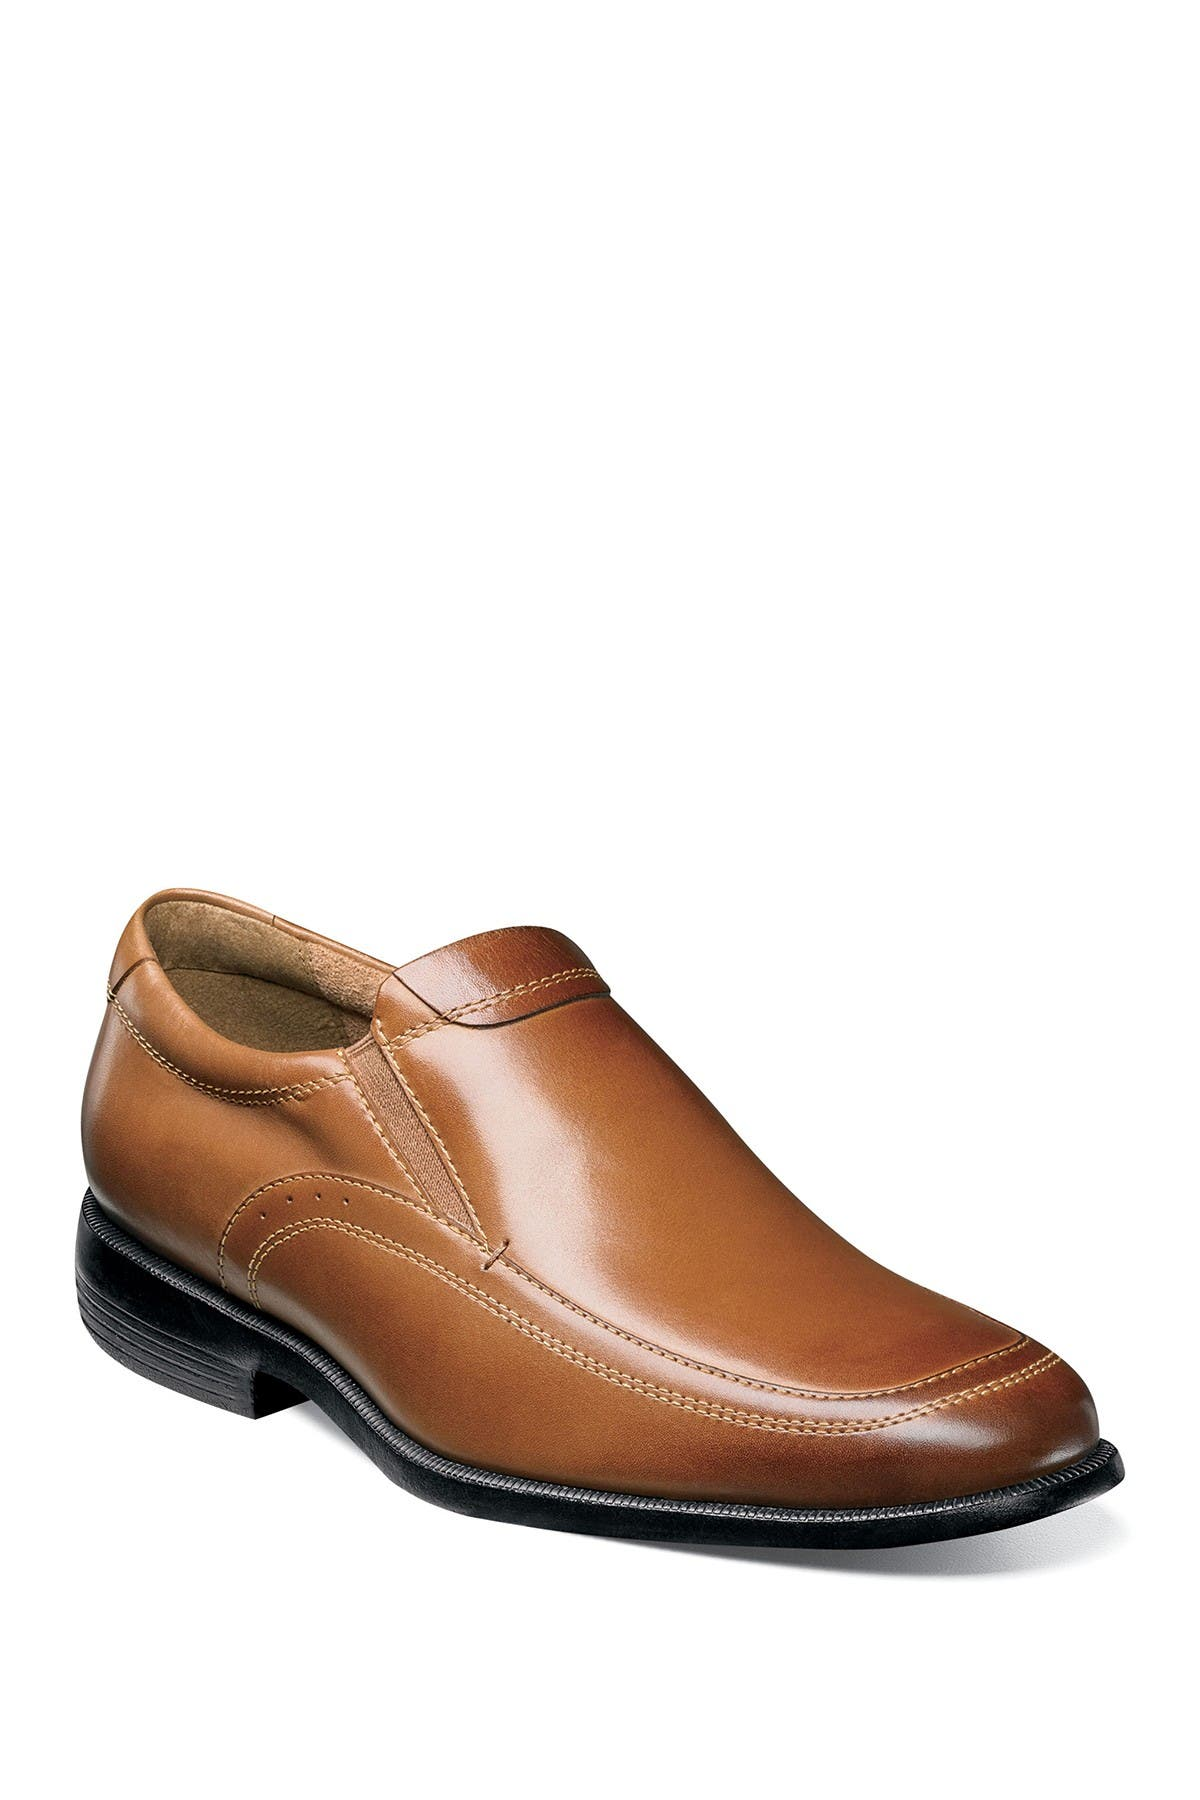 Image of NUNN BUSH Dylan Moc Toe Slip-On Loafer